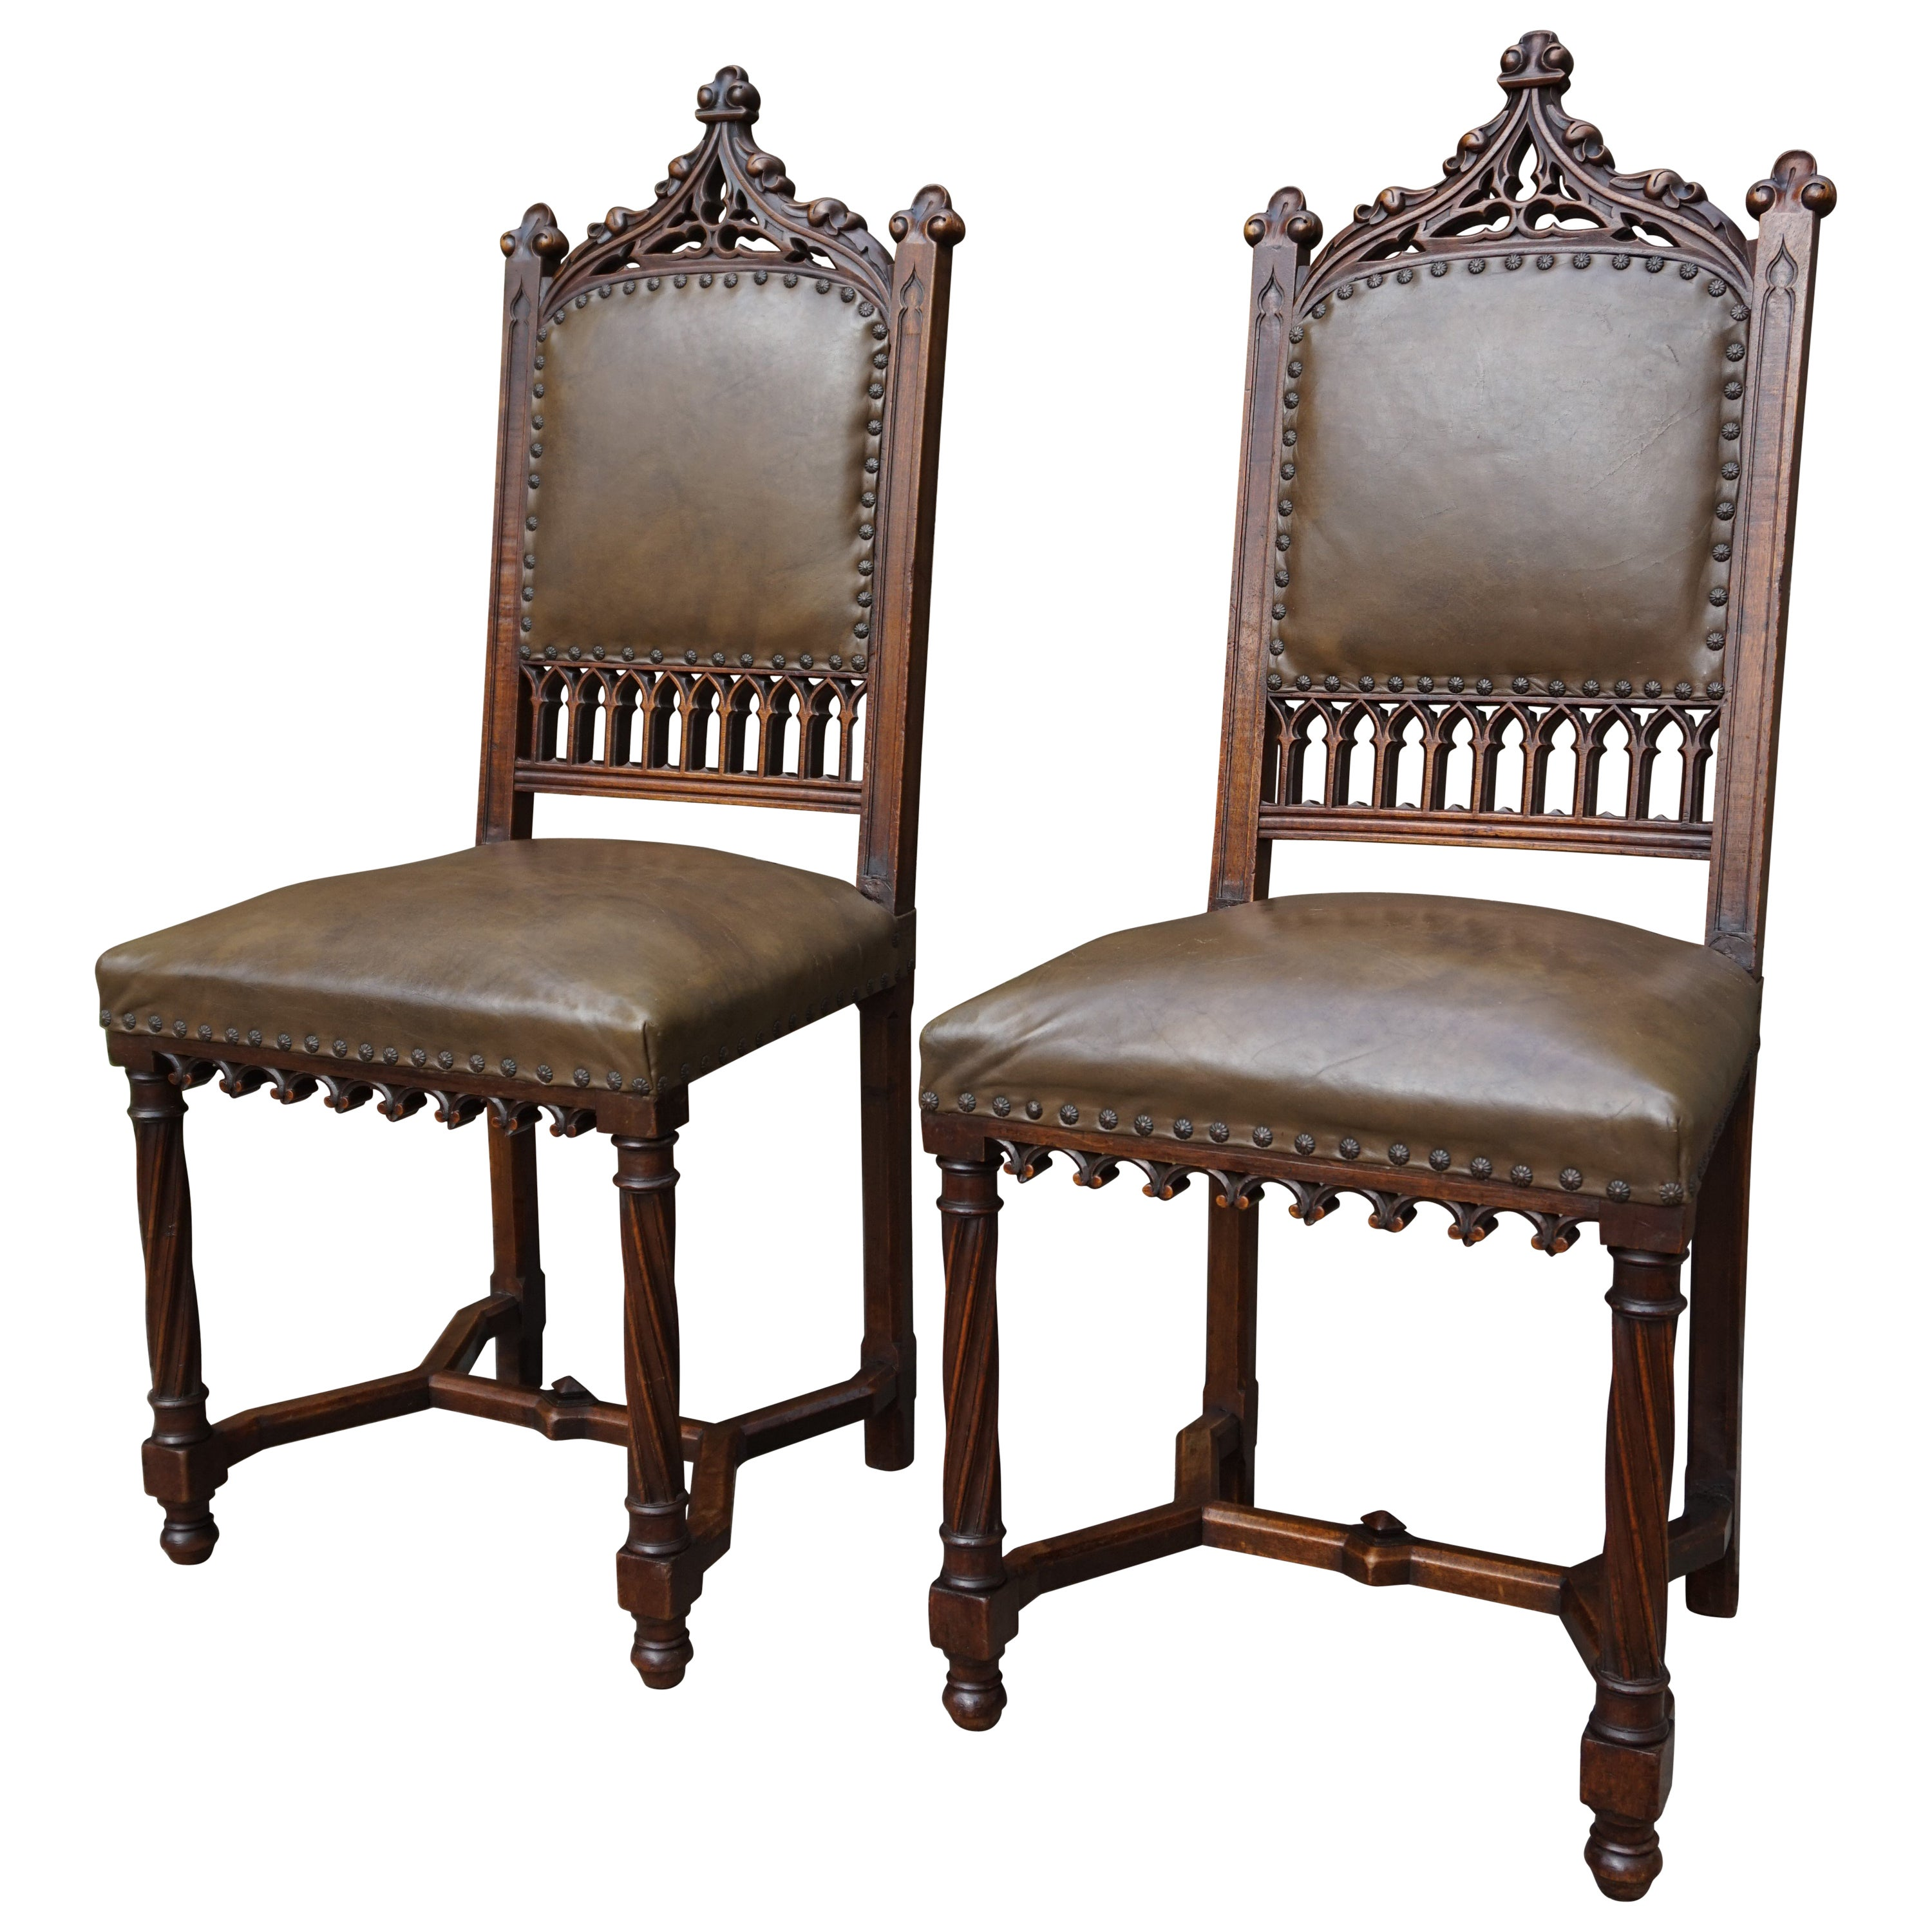 Pair of Hand Carved Solid Nutwood Gothic Revival Chairs with Leather Upholstery